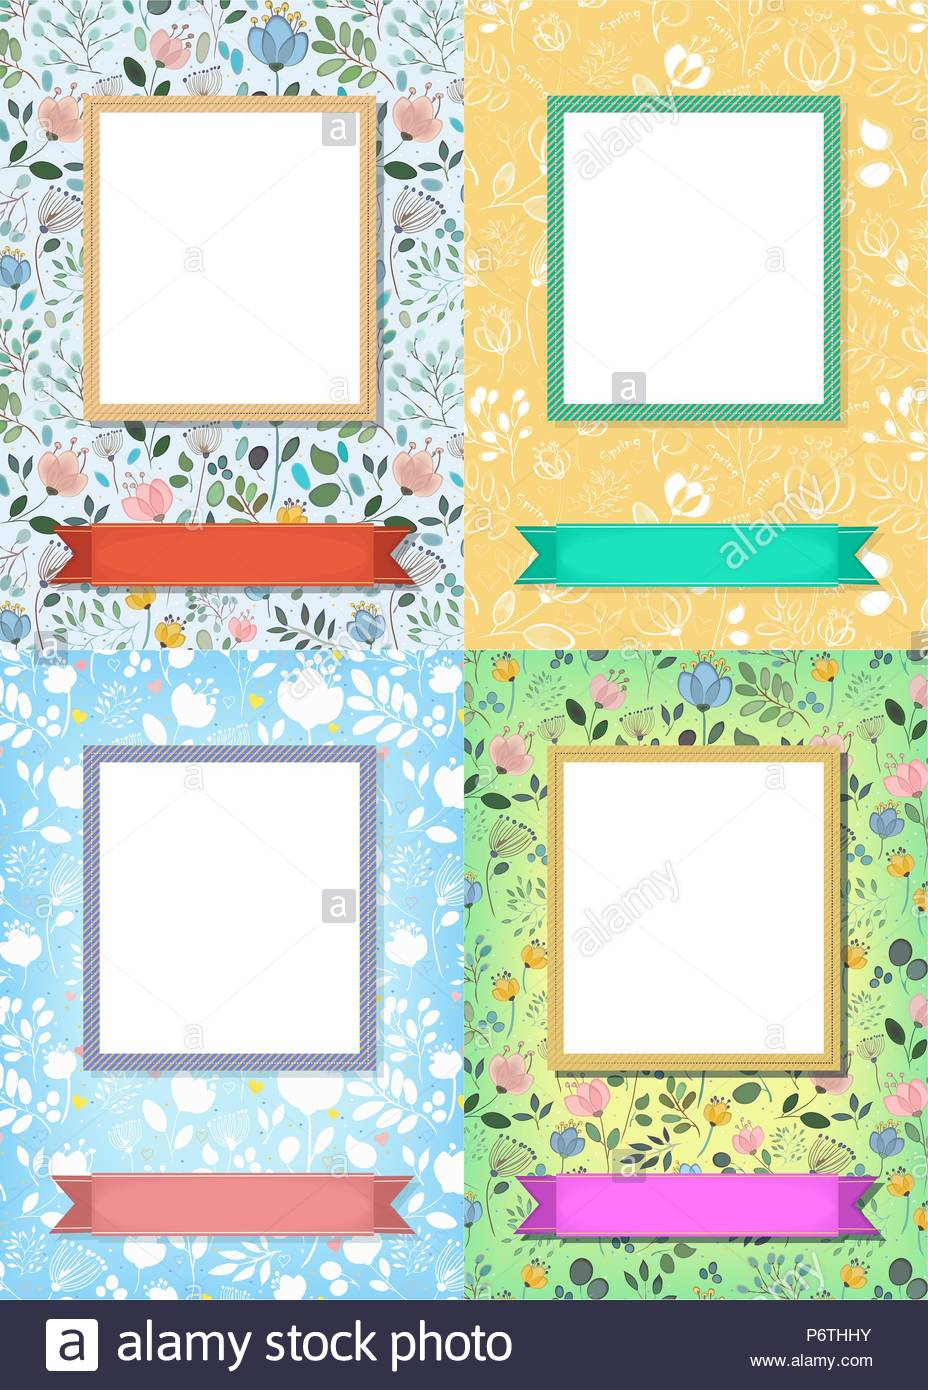 Set Of Floral Greeting Cards Graceful Flowers And Plants With